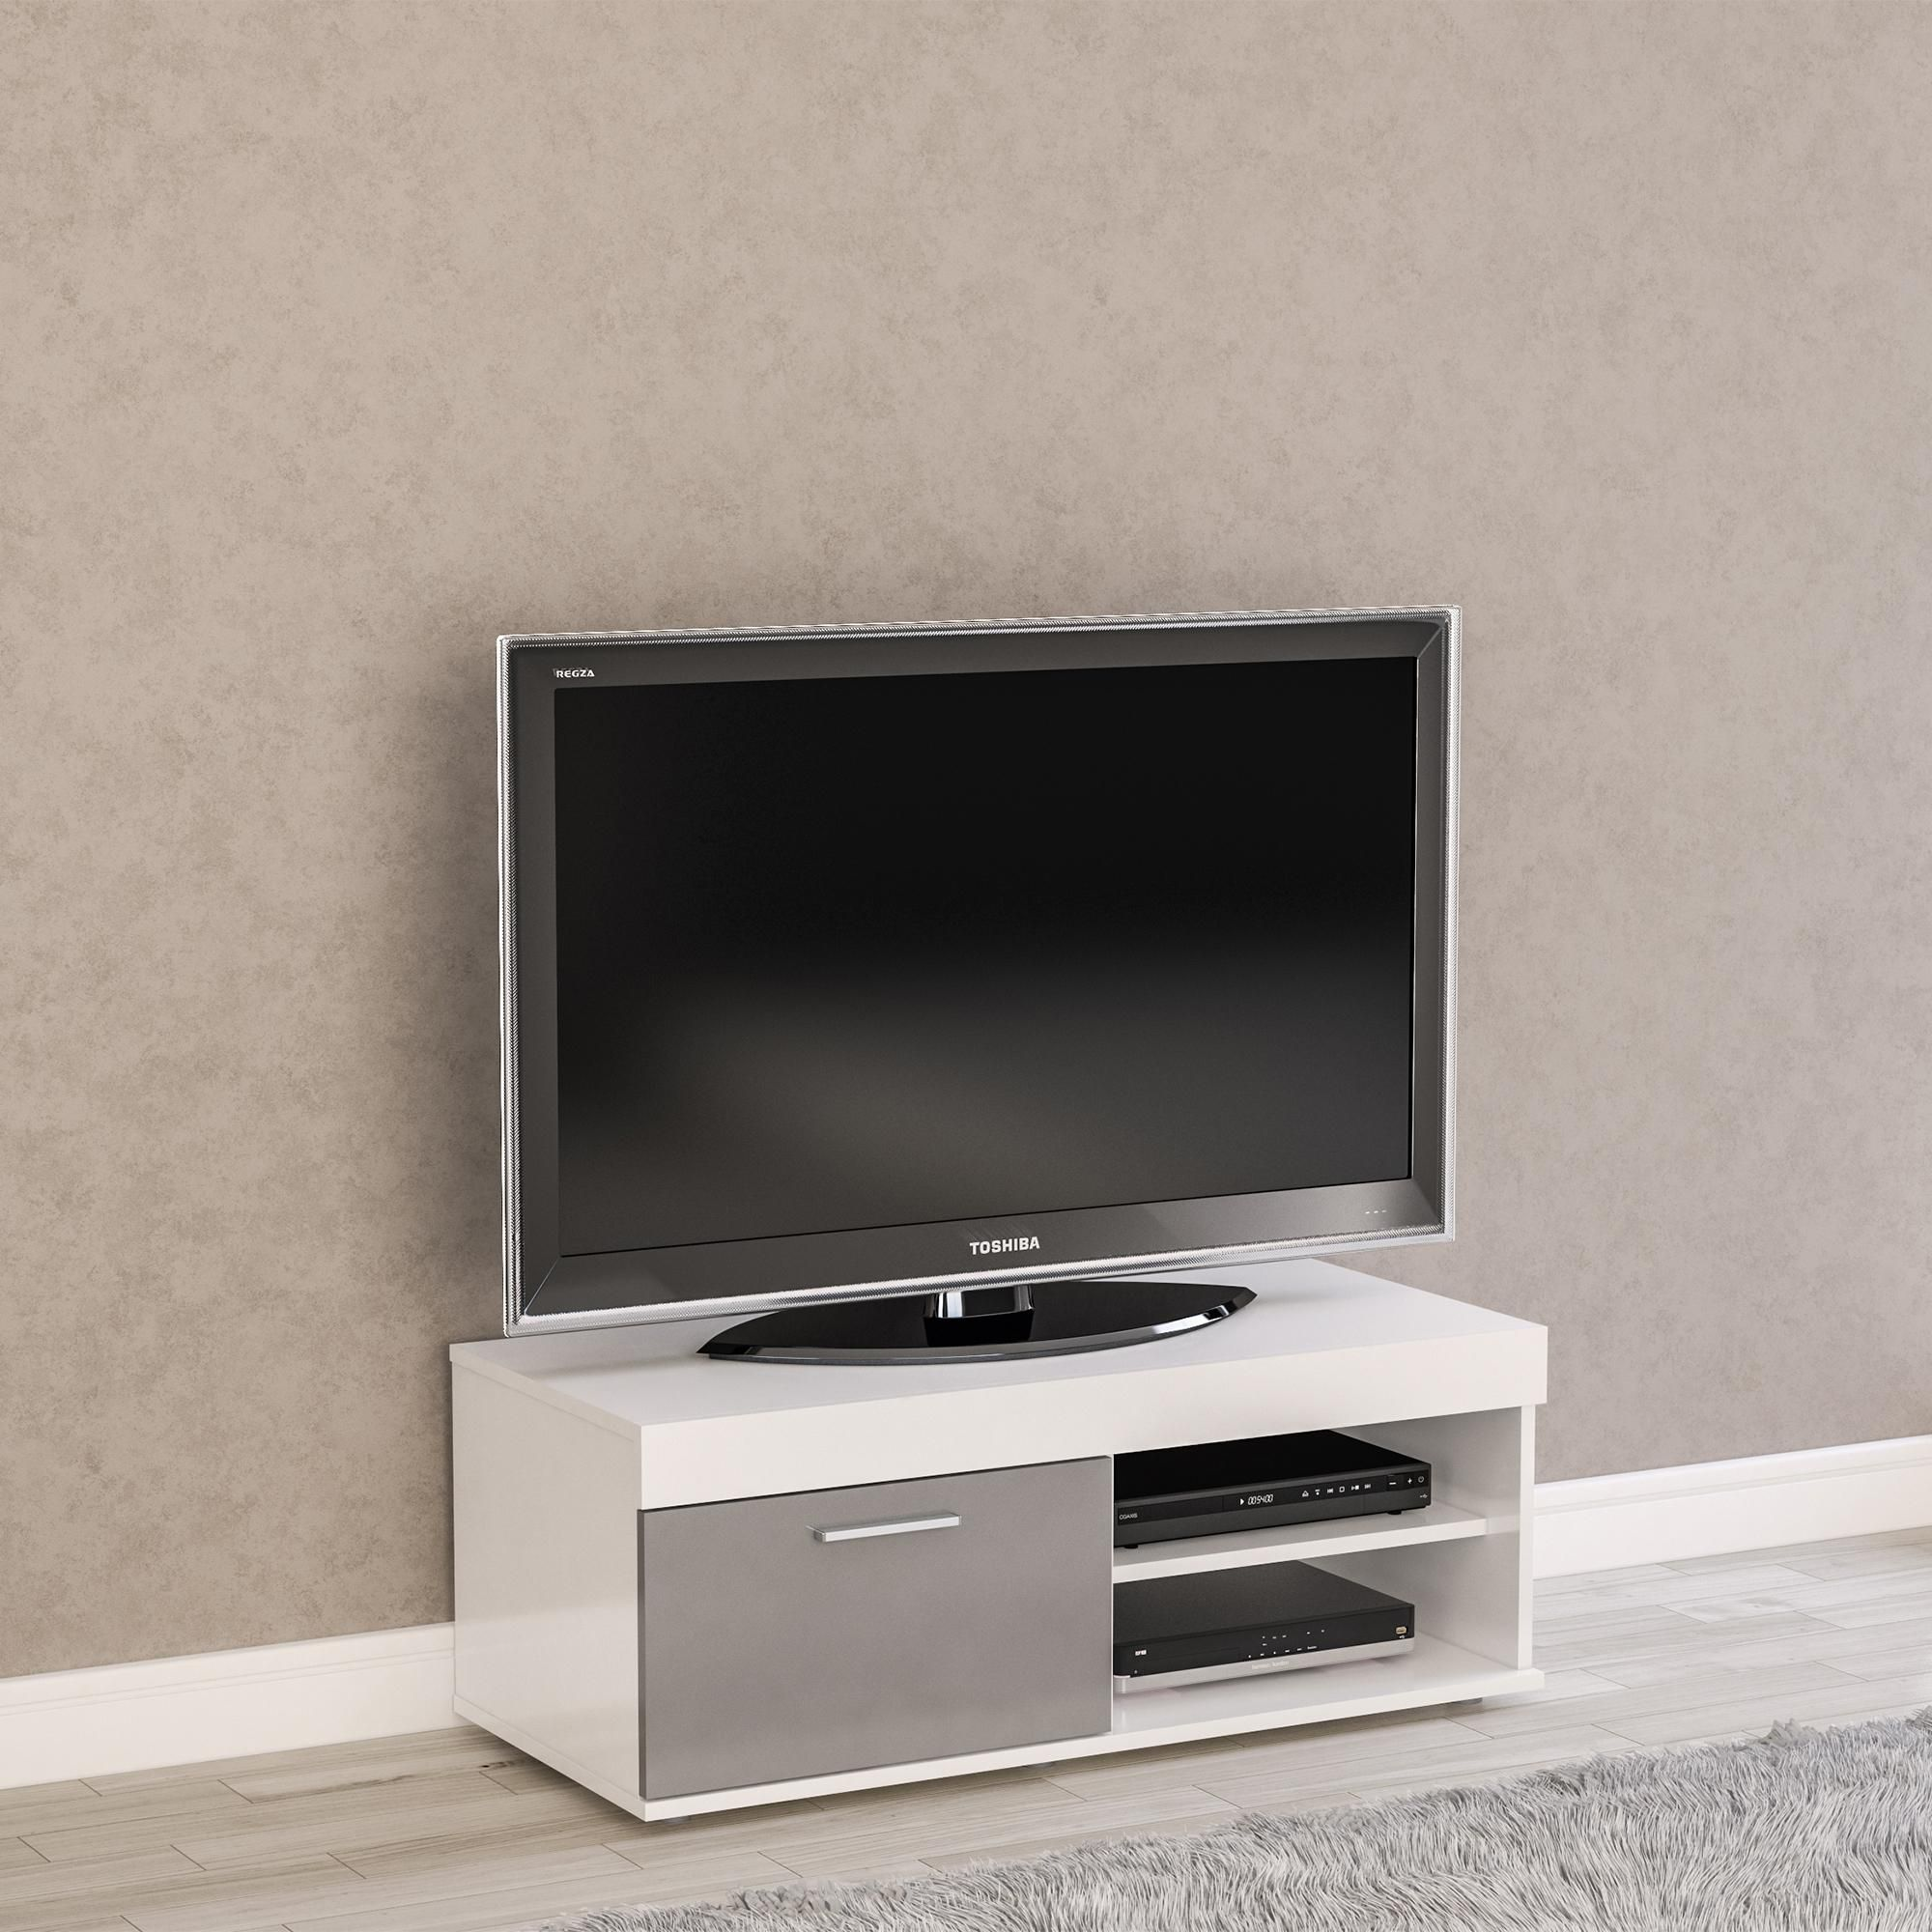 Edgeware Small Tv Stand In 2020 Small Tv Stand Wooden Tv Stands